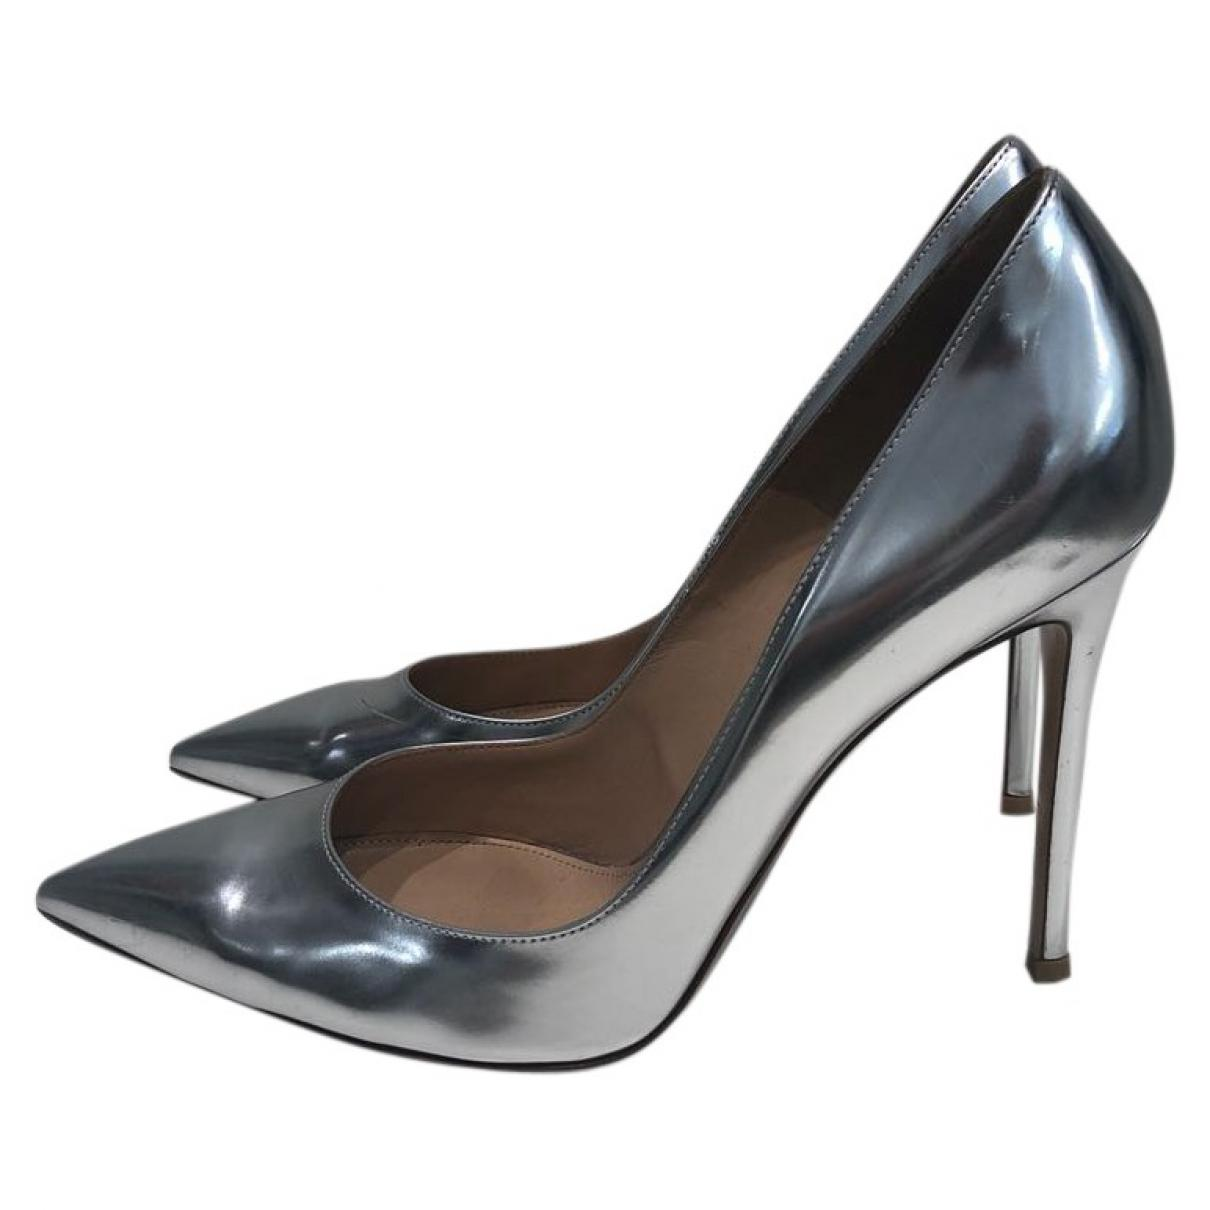 Pre-owned - Leather heels Gianvito Rossi W5J29CgL